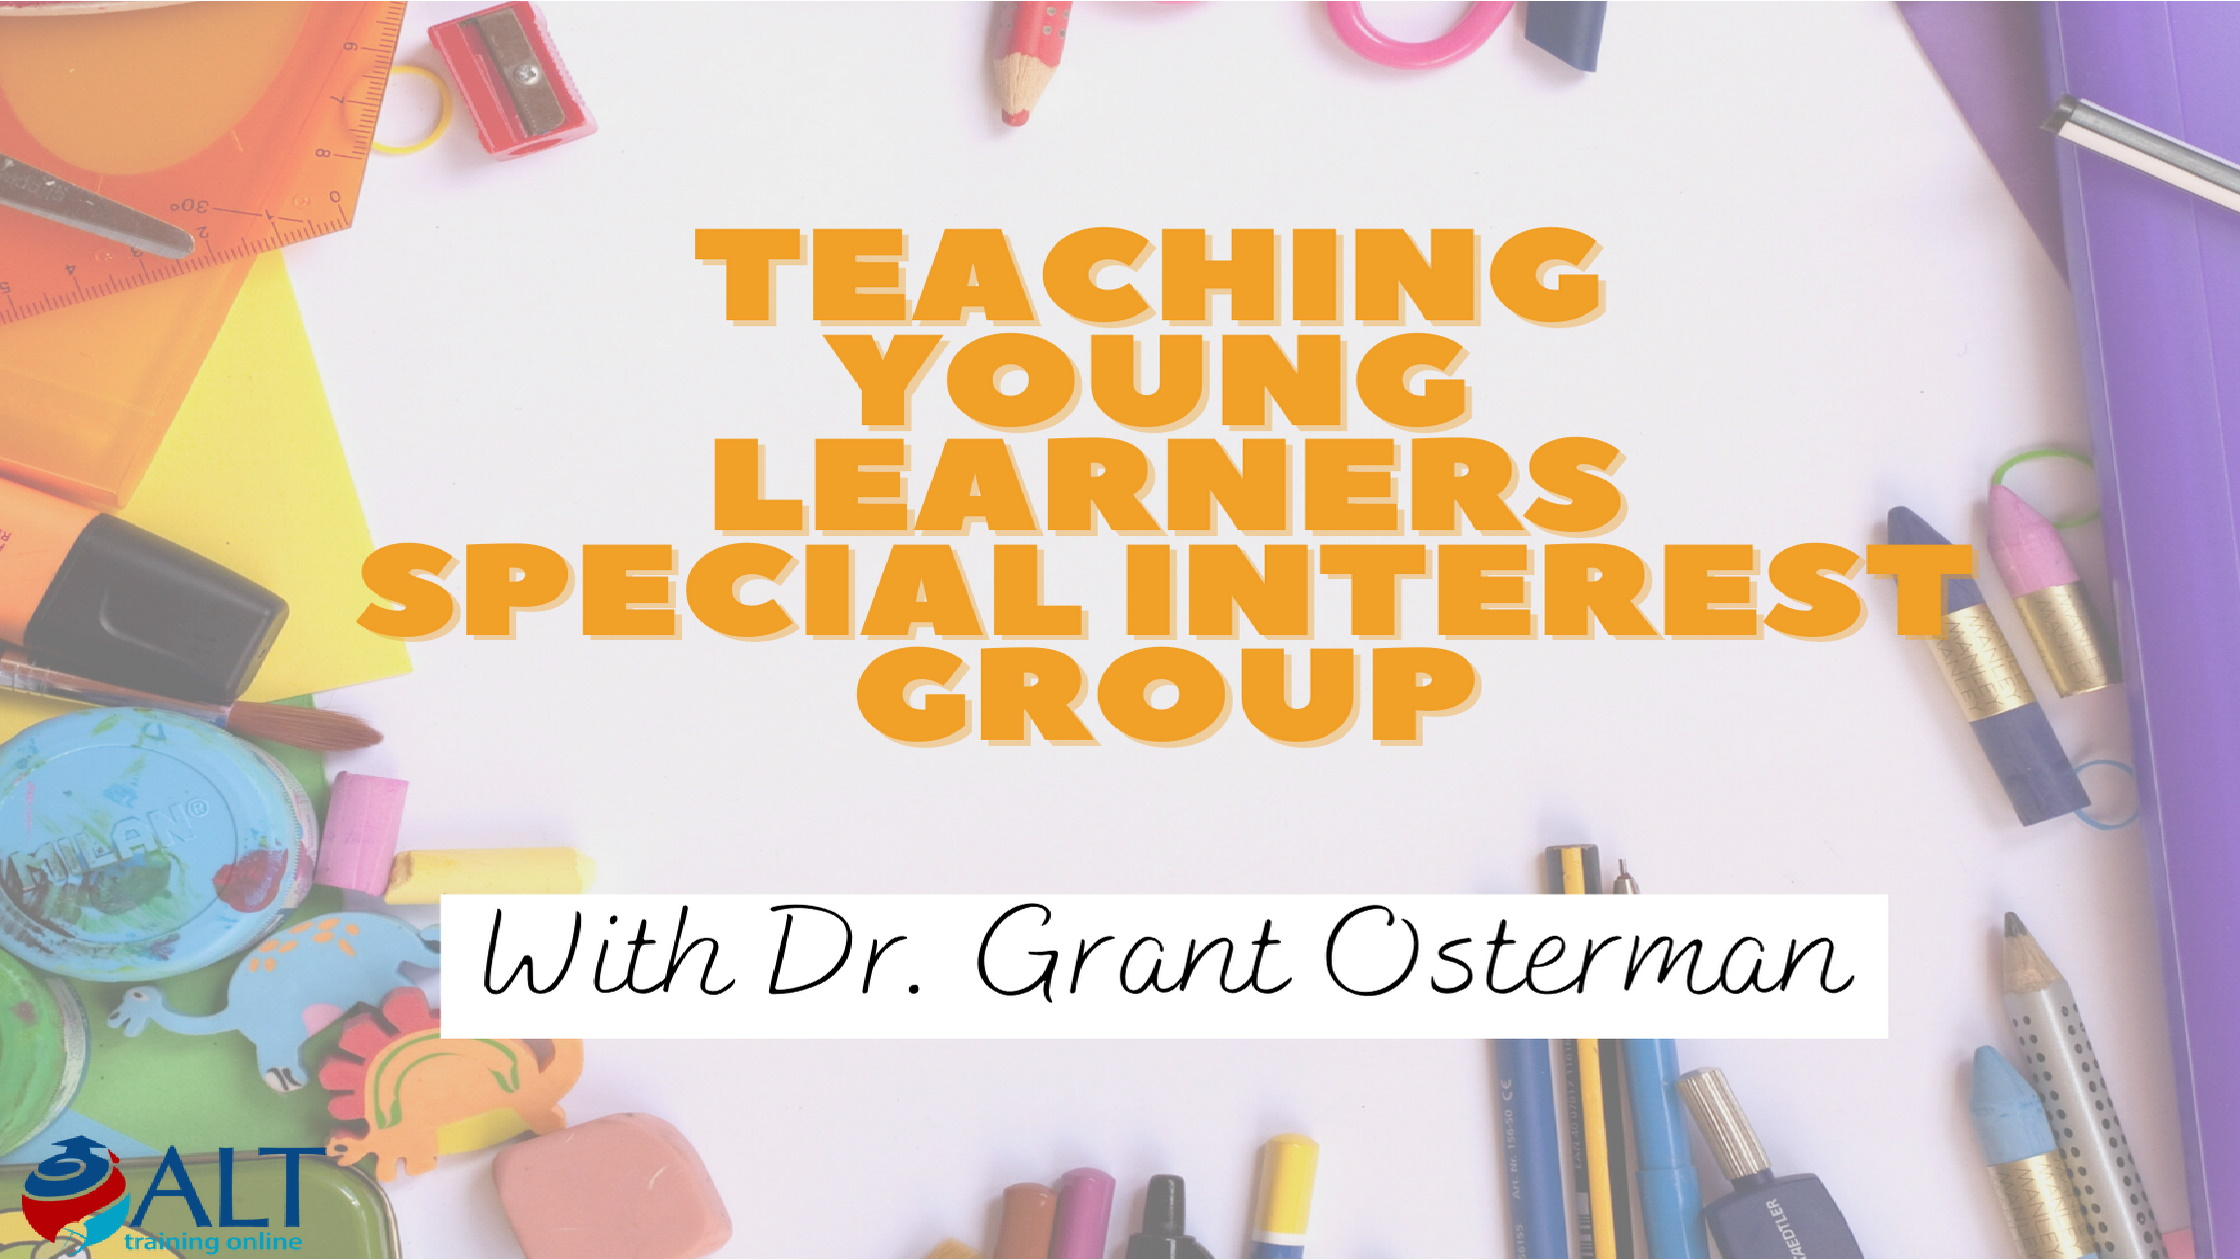 Teaching Young Learners Special Interest Group